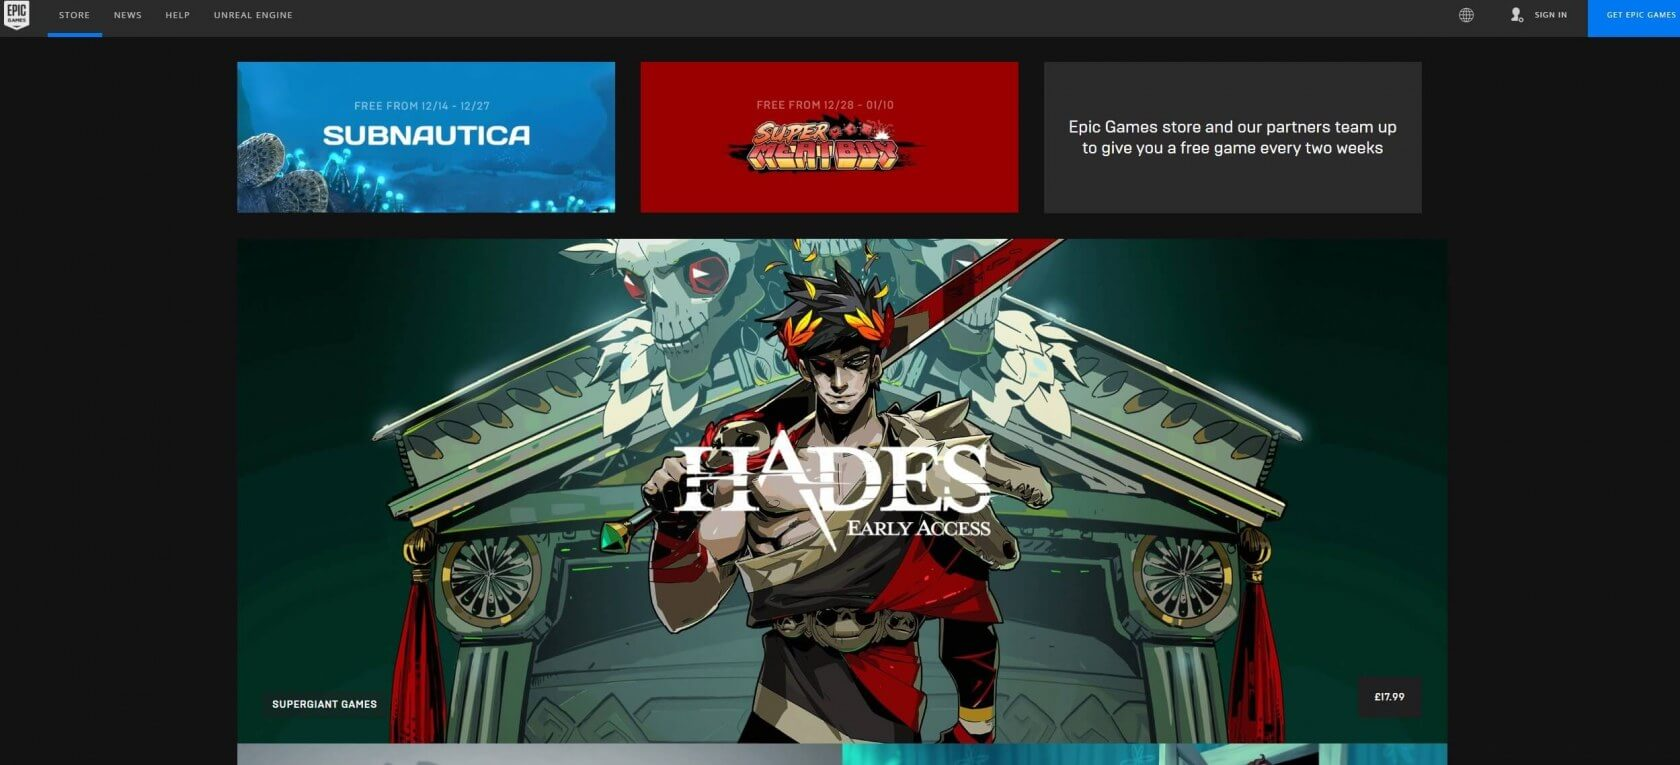 Some developers are ditching Steam in favor of the Epic Games Store